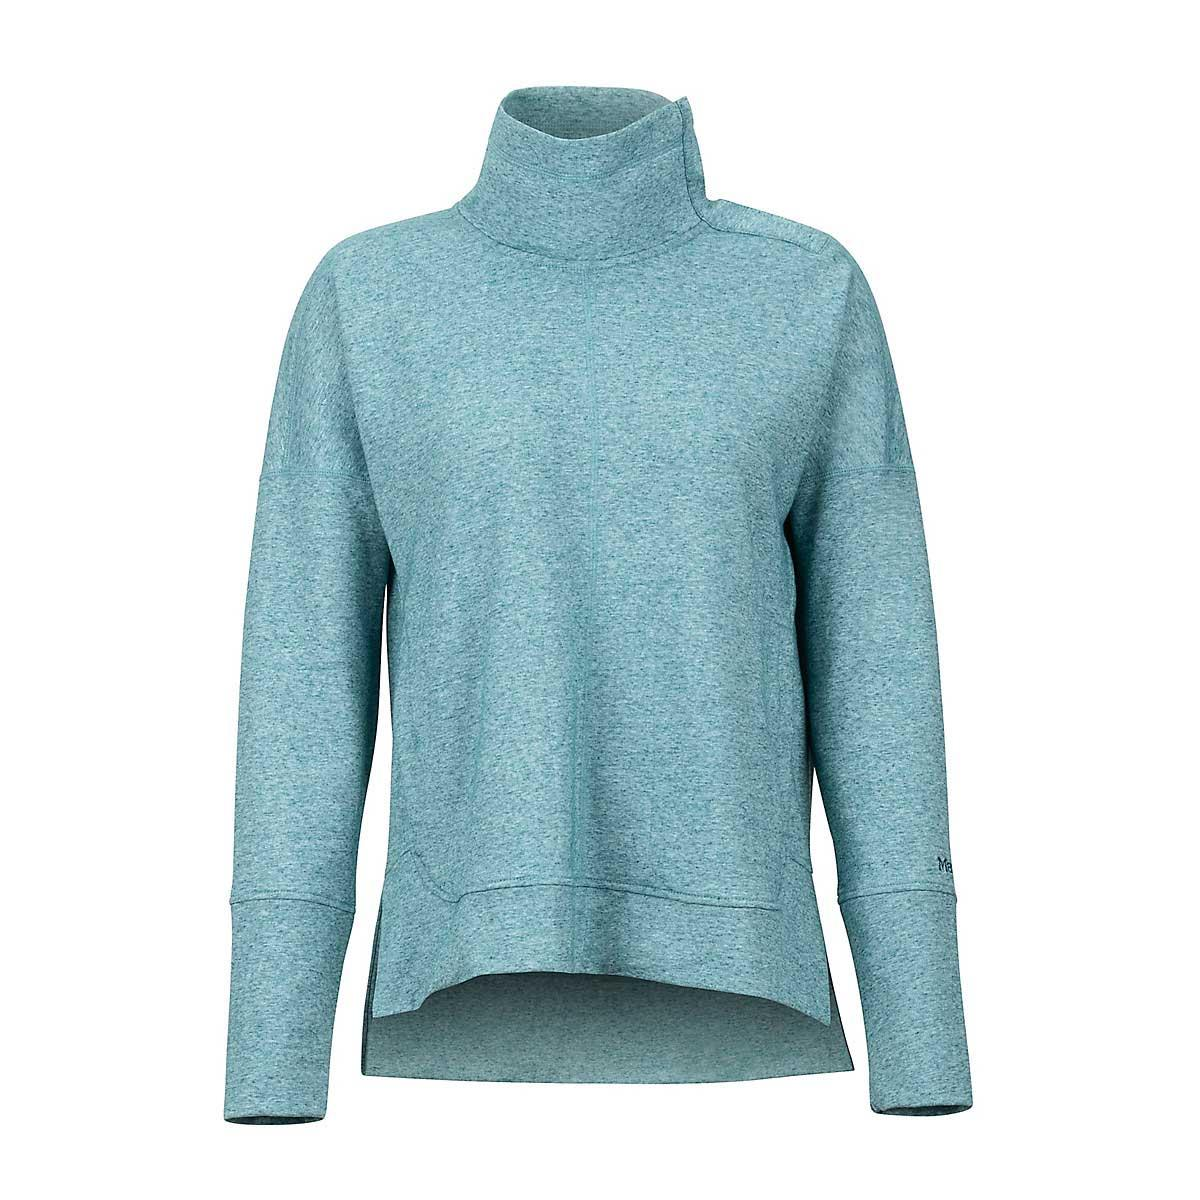 Marmot Women's Baillie Pullover in Deep Teal